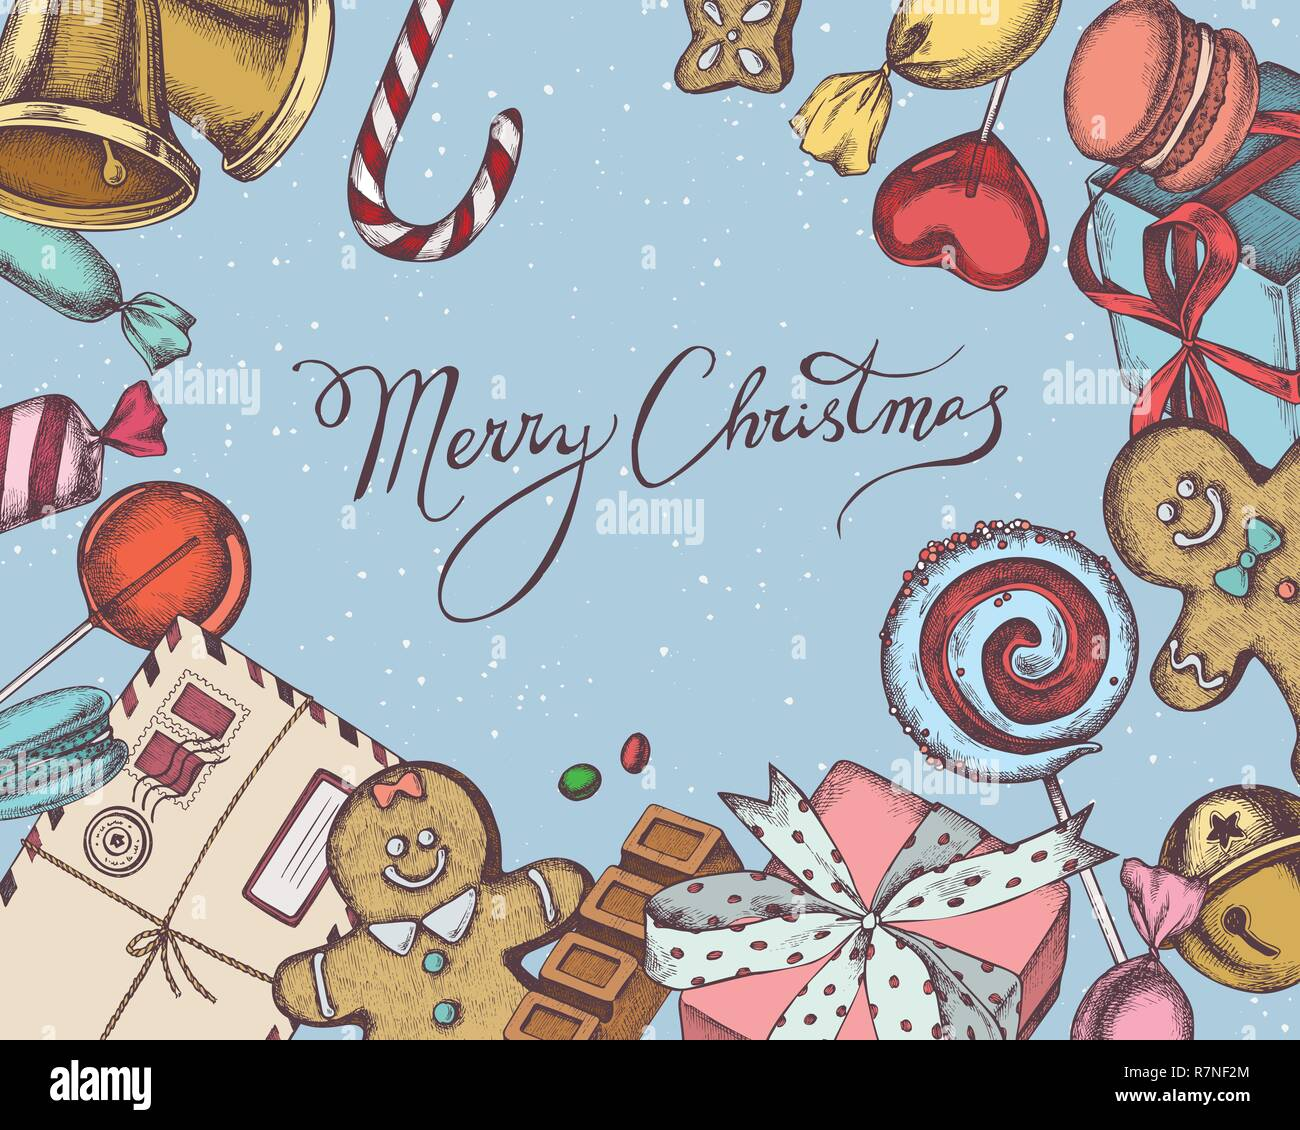 Vector composition with colored bells, jingles, gingerbread men, gingerbread, macaron, lollipop, bar, candies, stocking, lettering, gift boxes - Stock Image